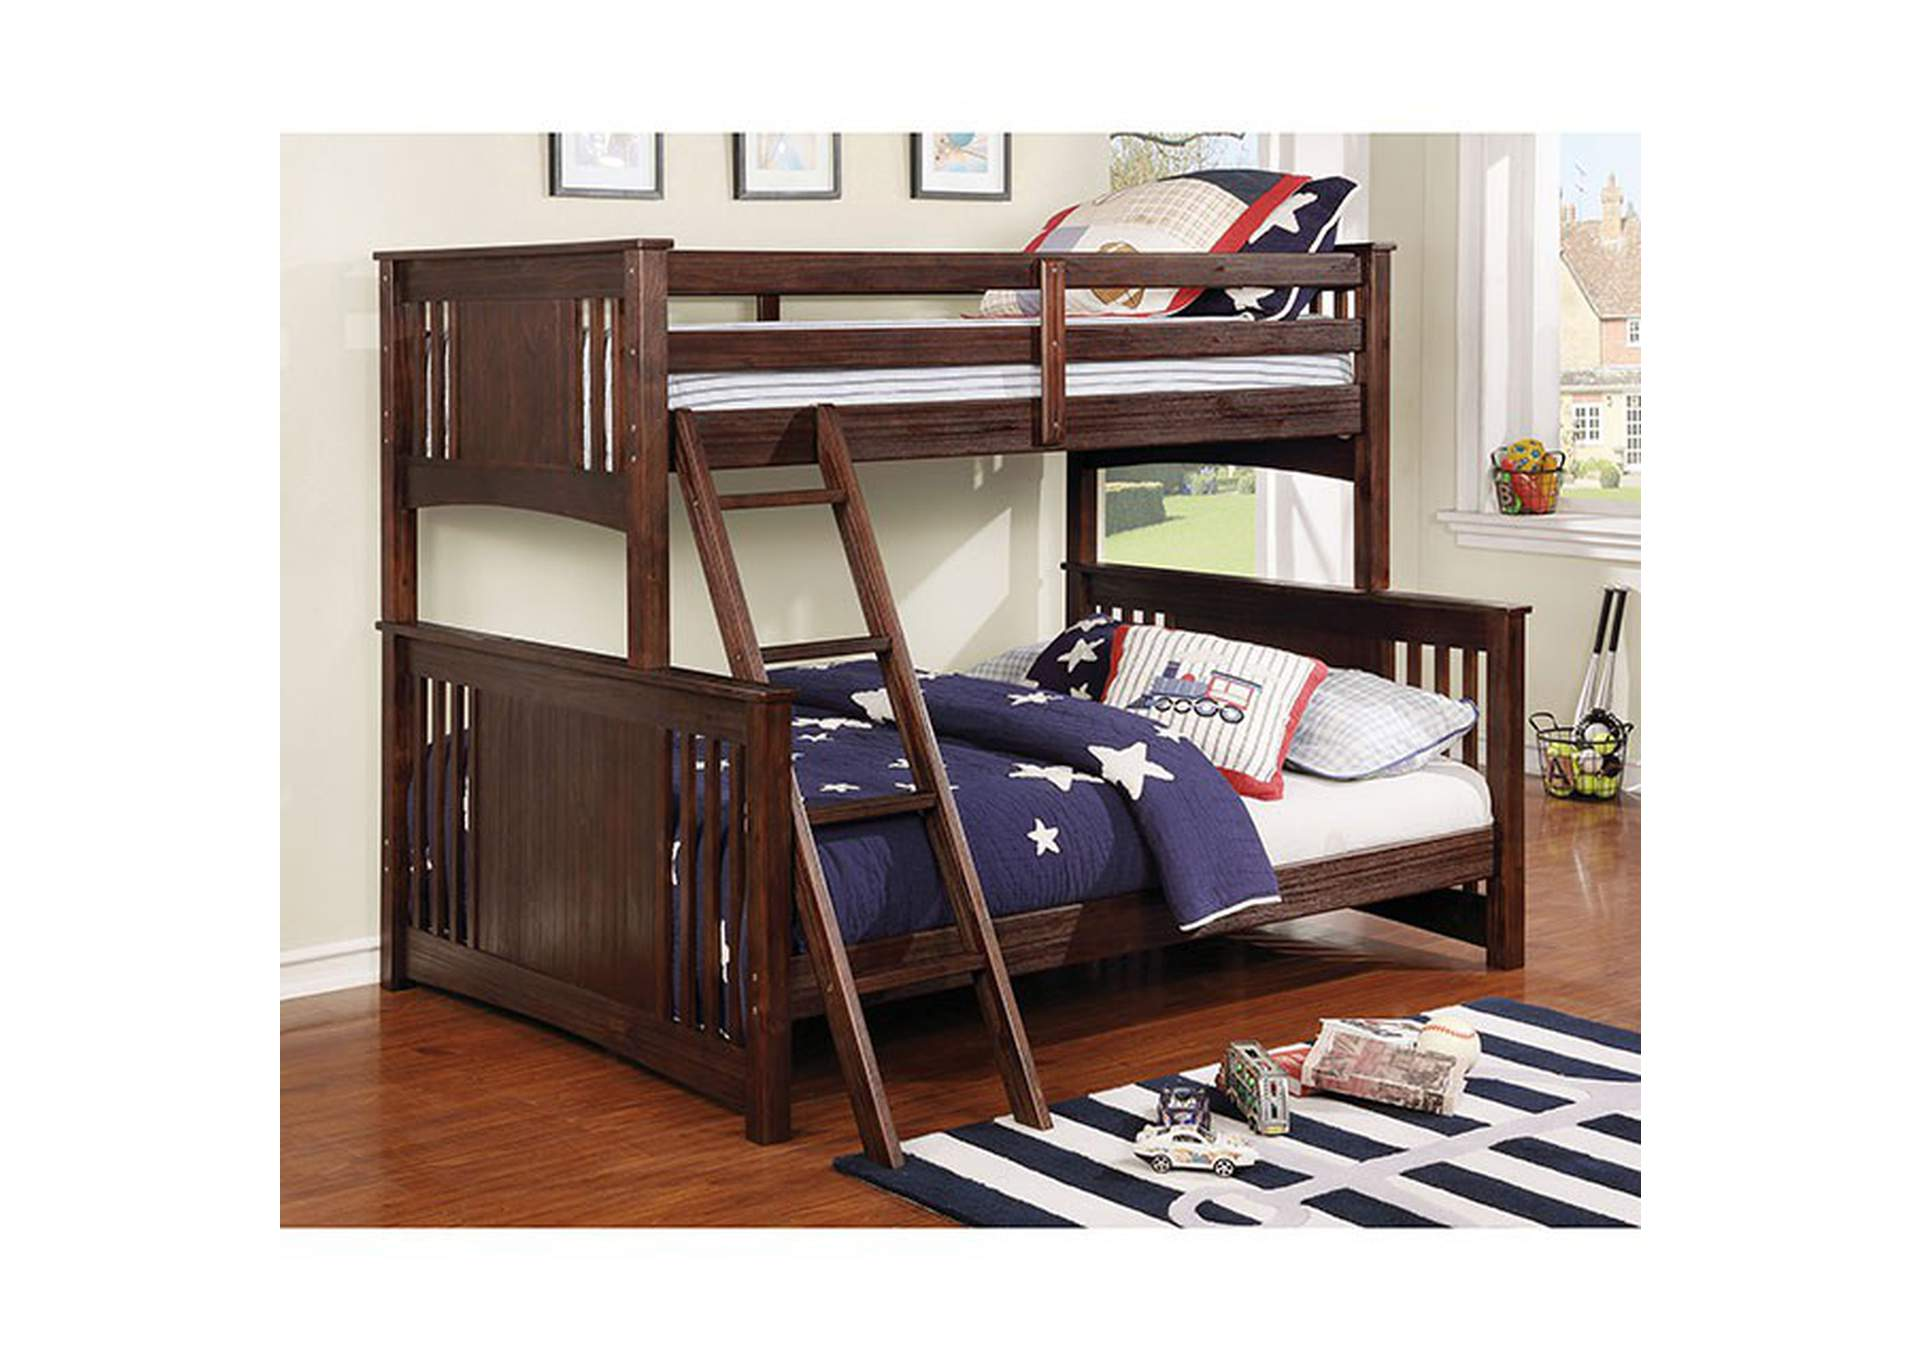 Spring Creek Twin/Full Bunk Bed,Furniture of America